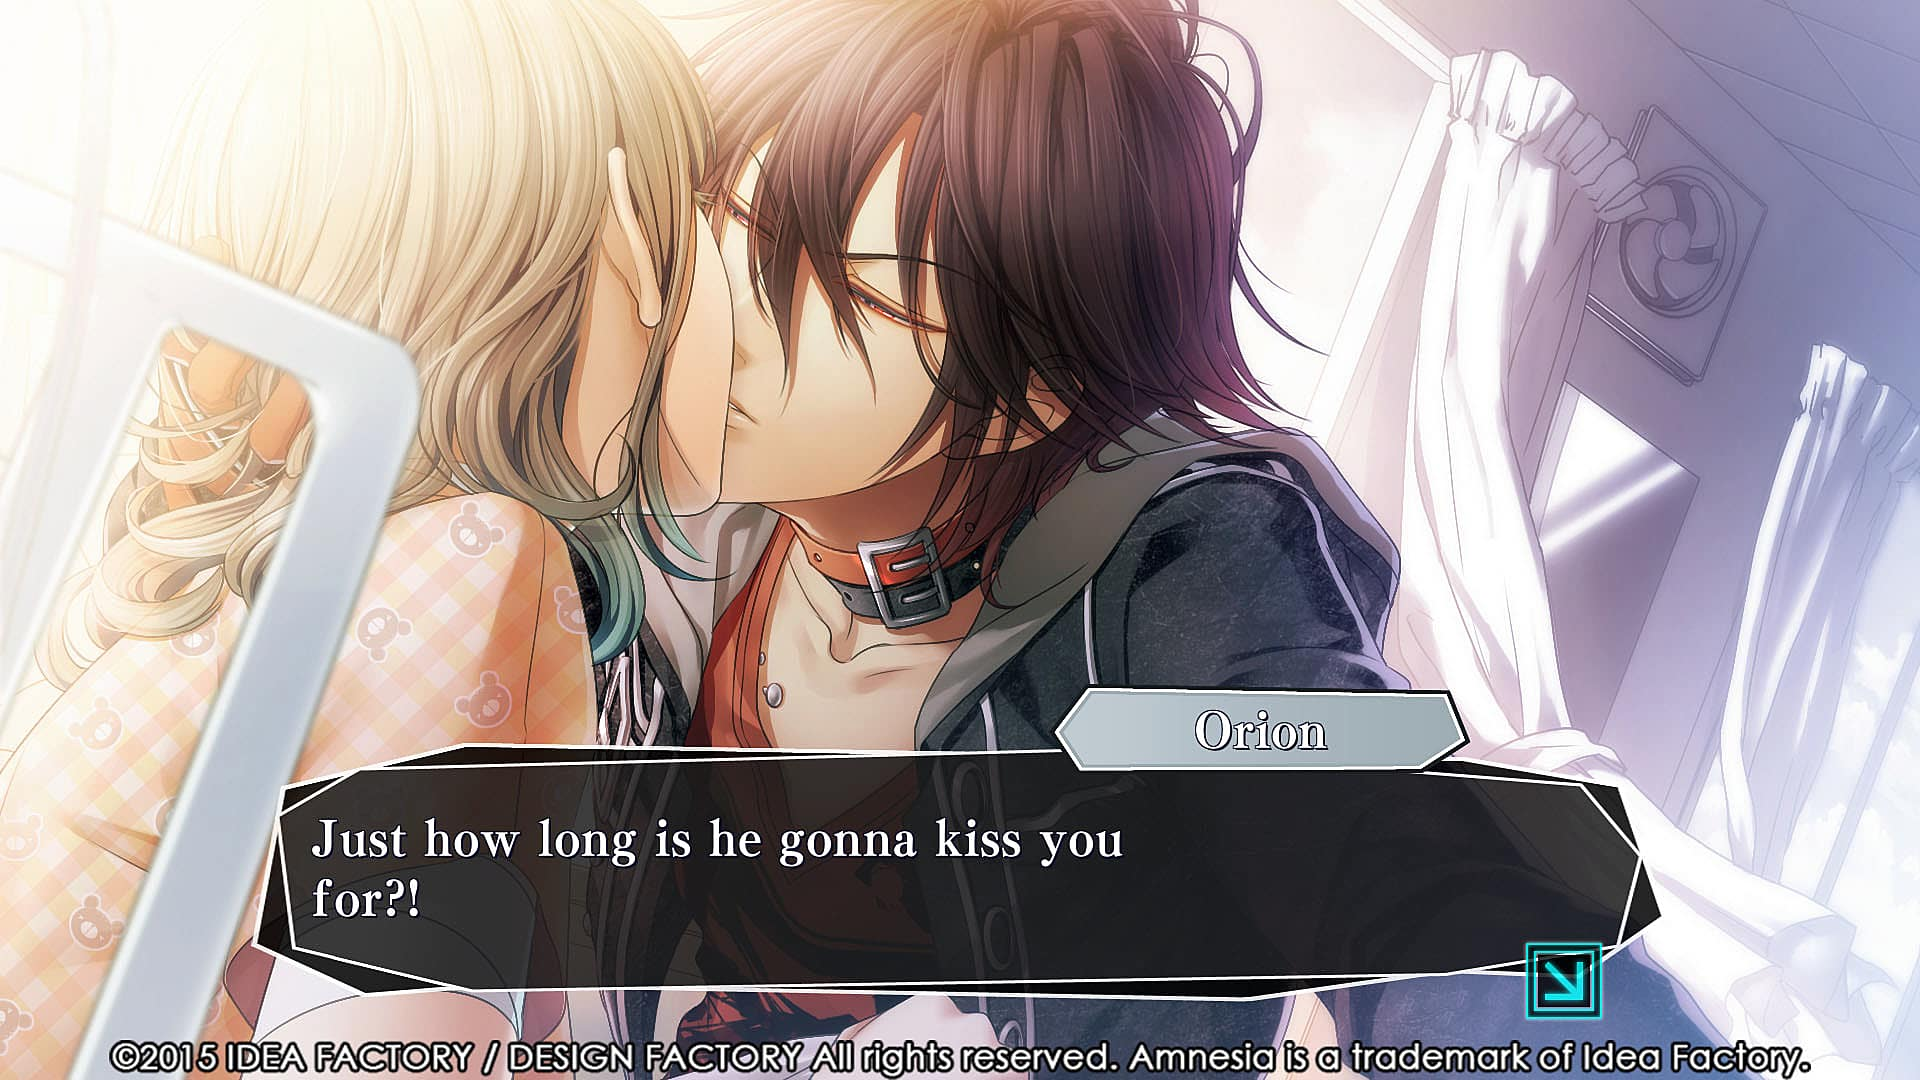 free japanese dating sims games Dating sim free download - the cinderella contractfree dating sim, bidding for lovefree dating sim, decoding desire dating sim, and many more programs.